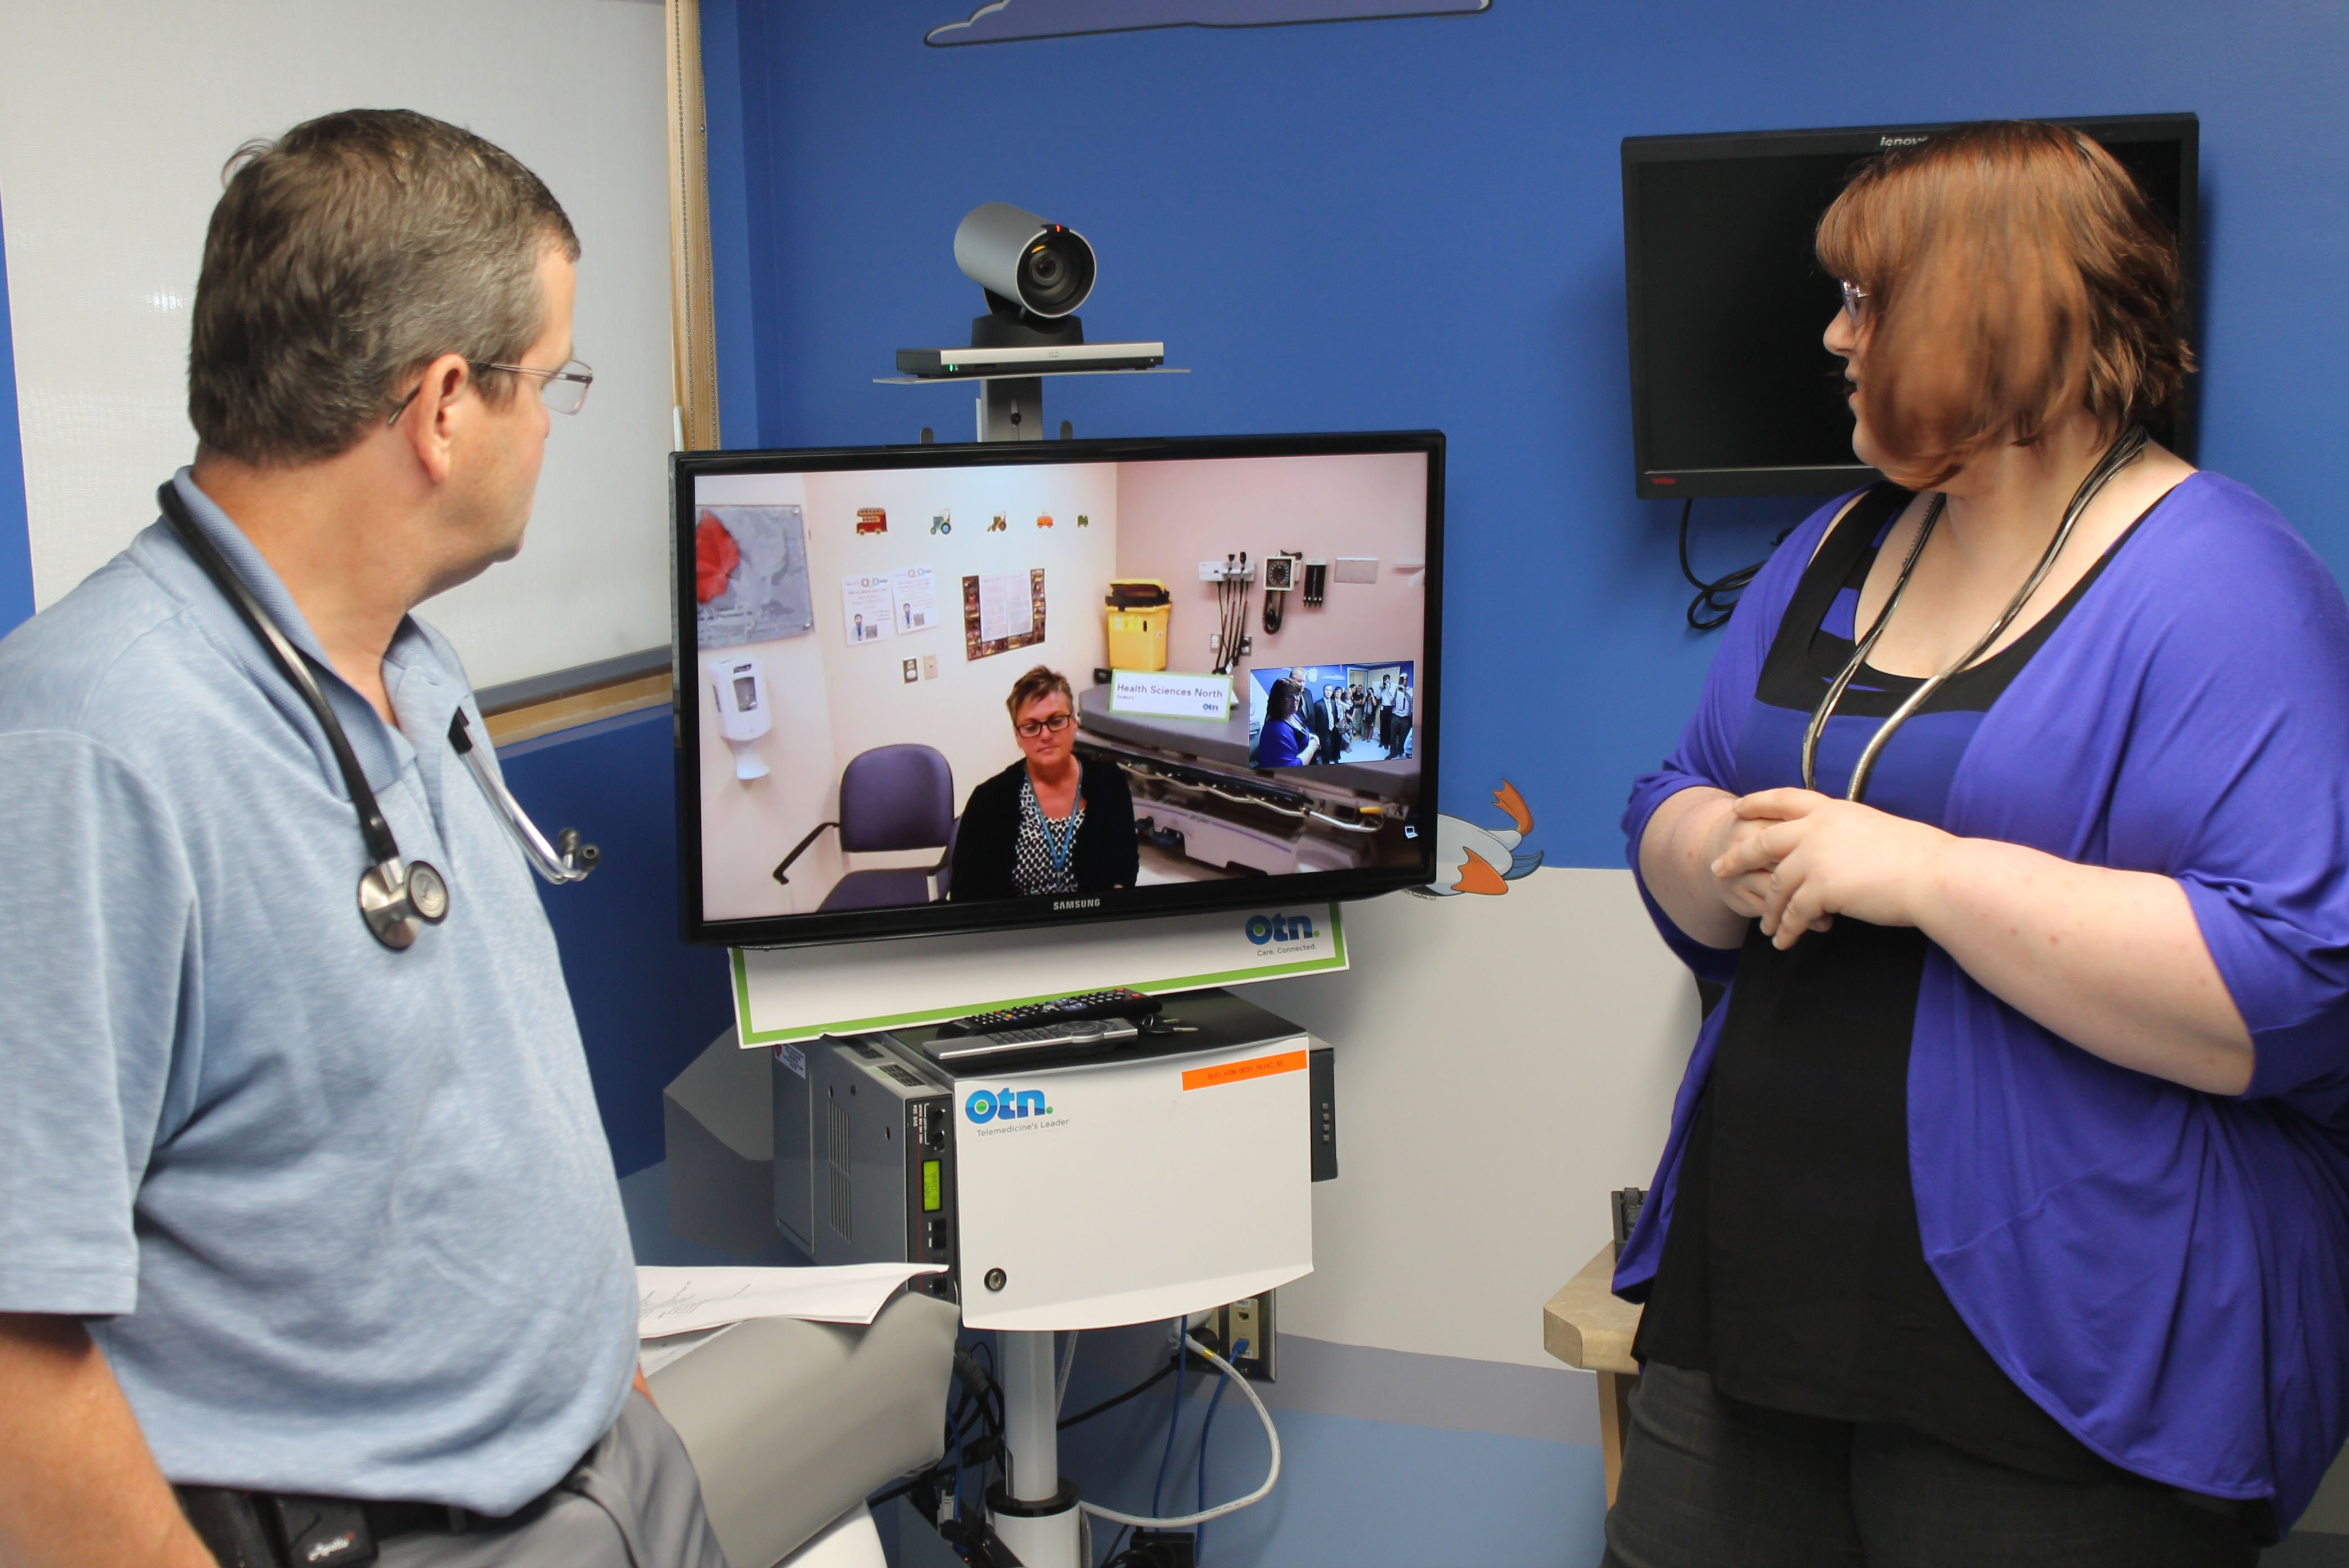 telemedicine and technology used to improve healthcare quality and access